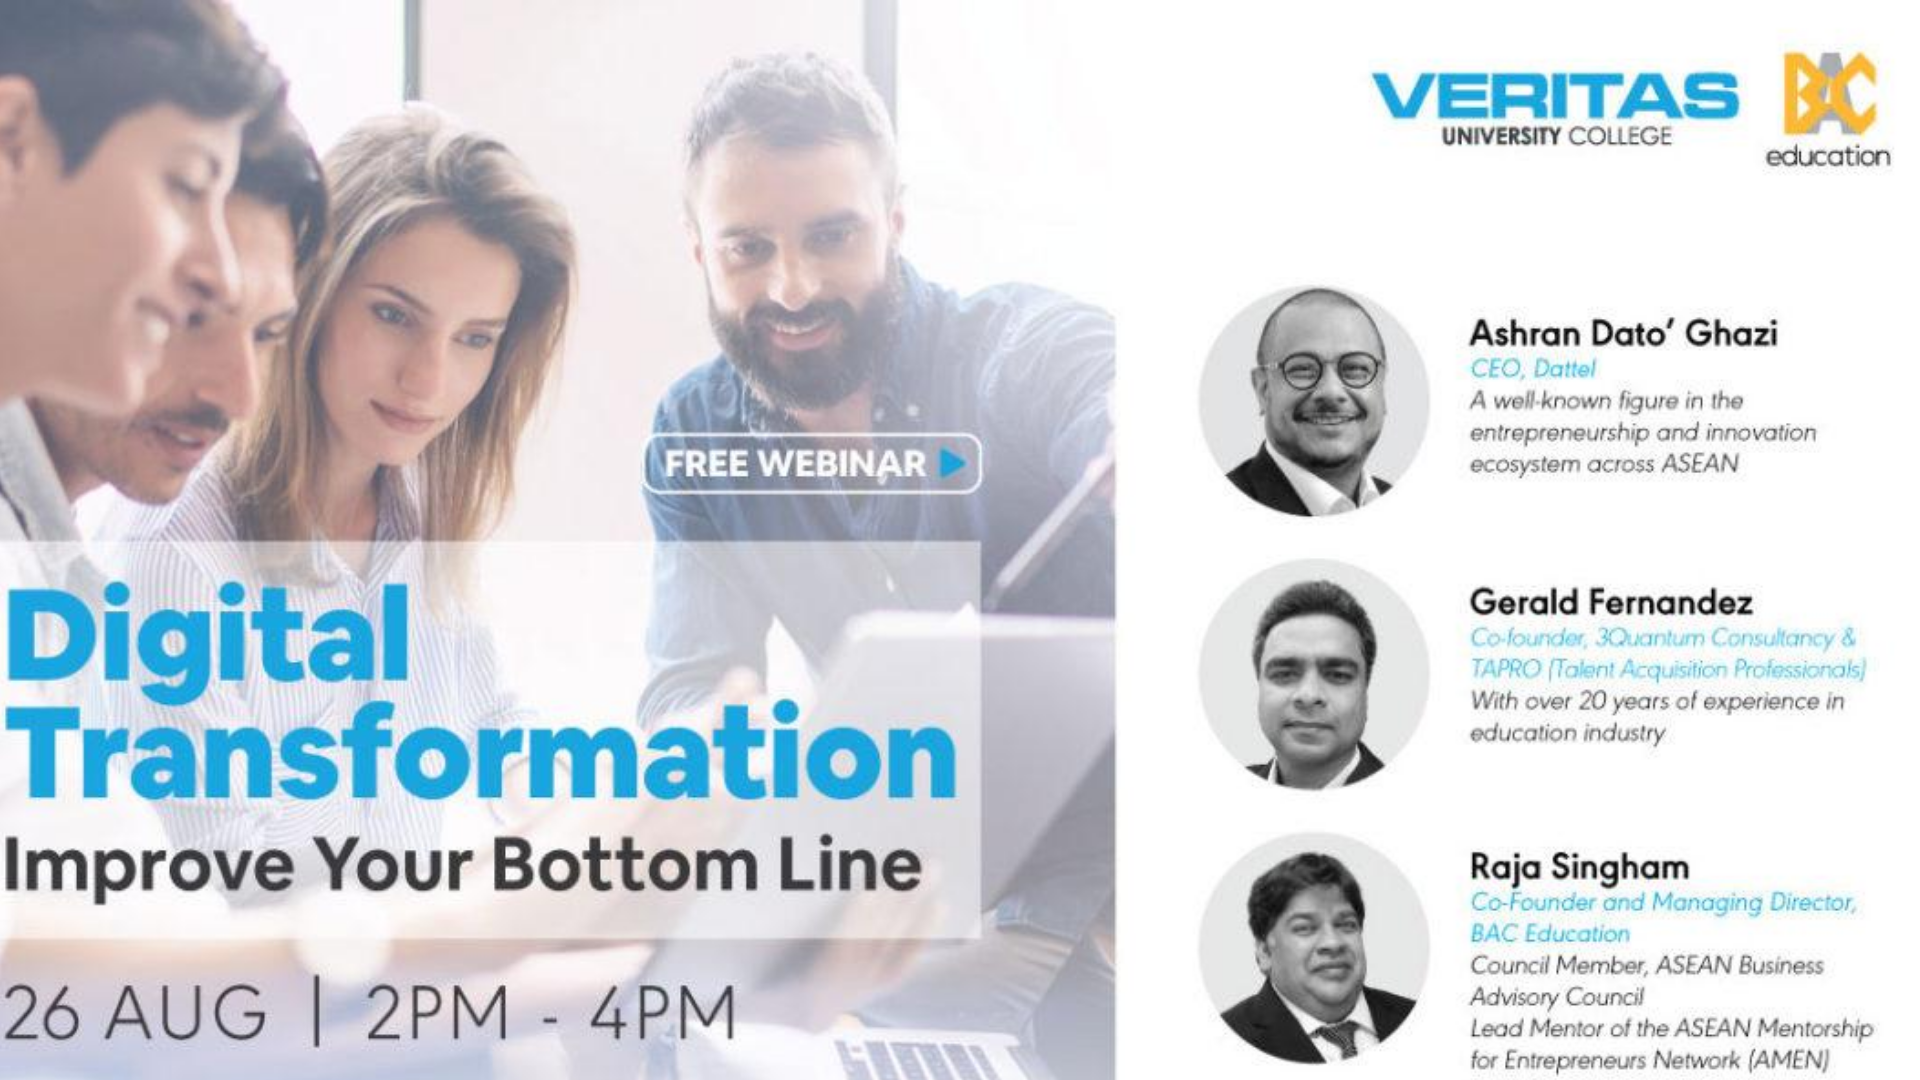 Digital Transformation Webinar by Veritas University College